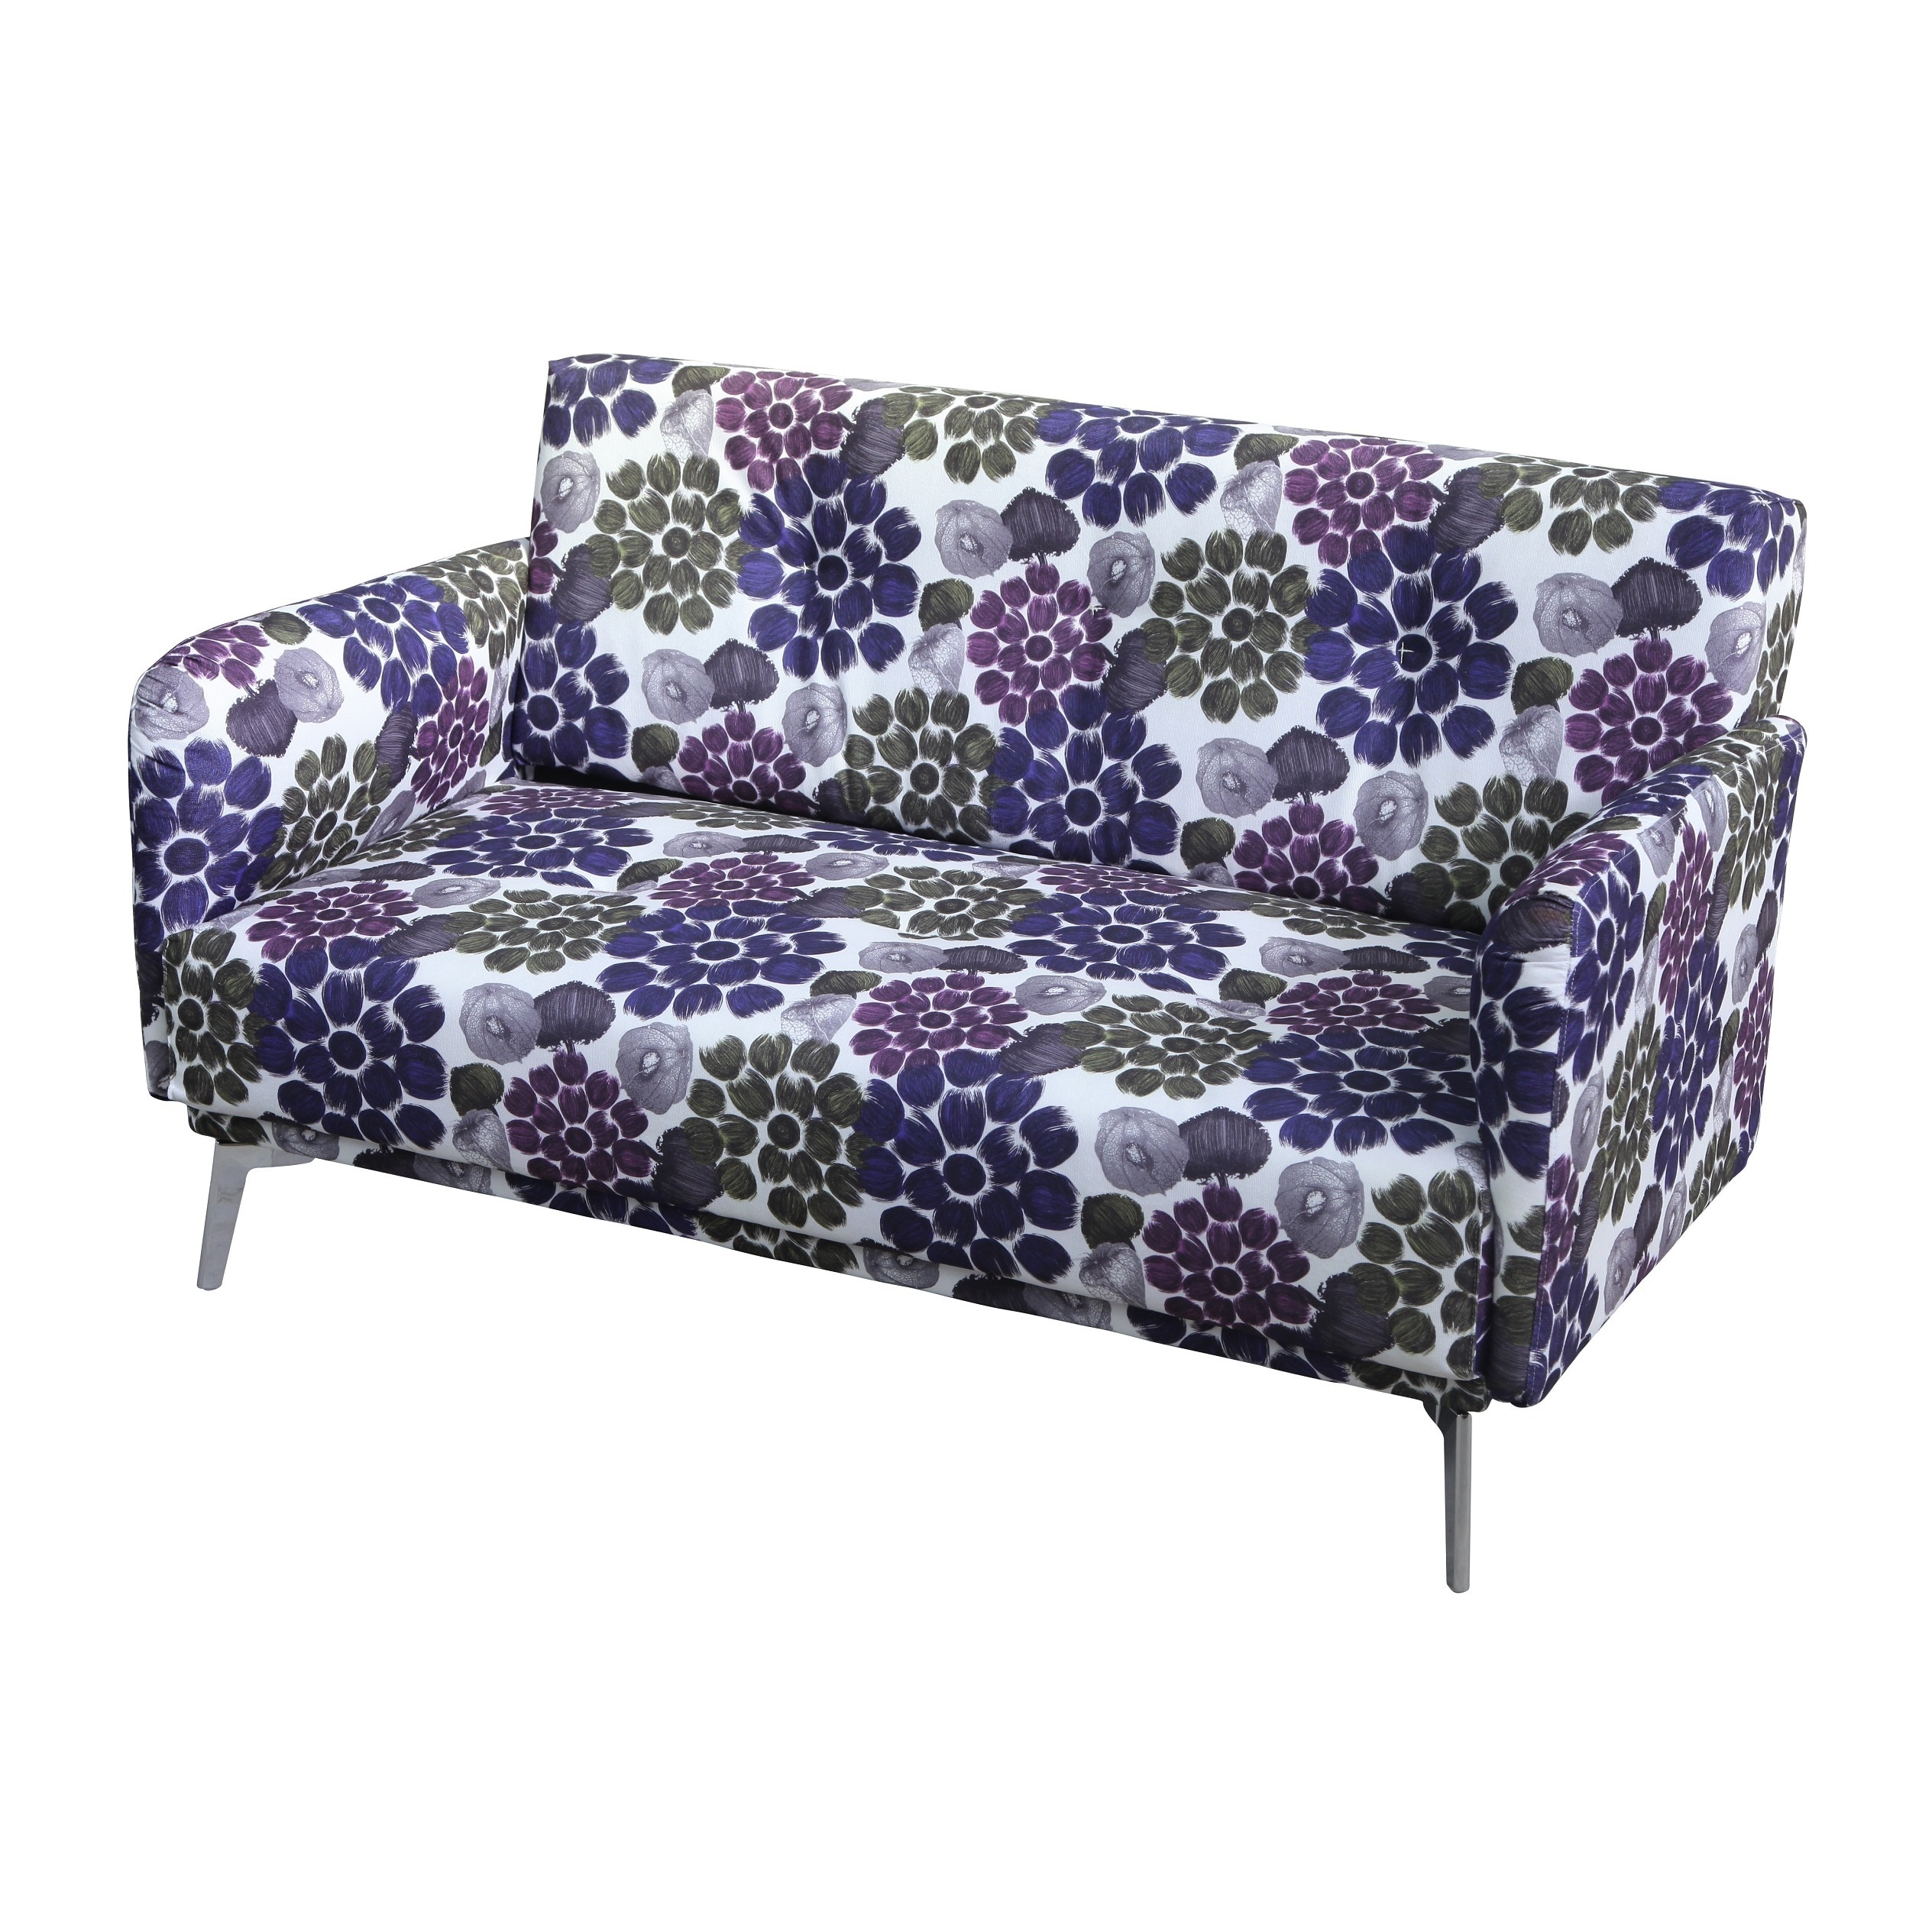 loveseat sofa couch covers pattern beautiful pottery sewing barn armchair cover ektorp of